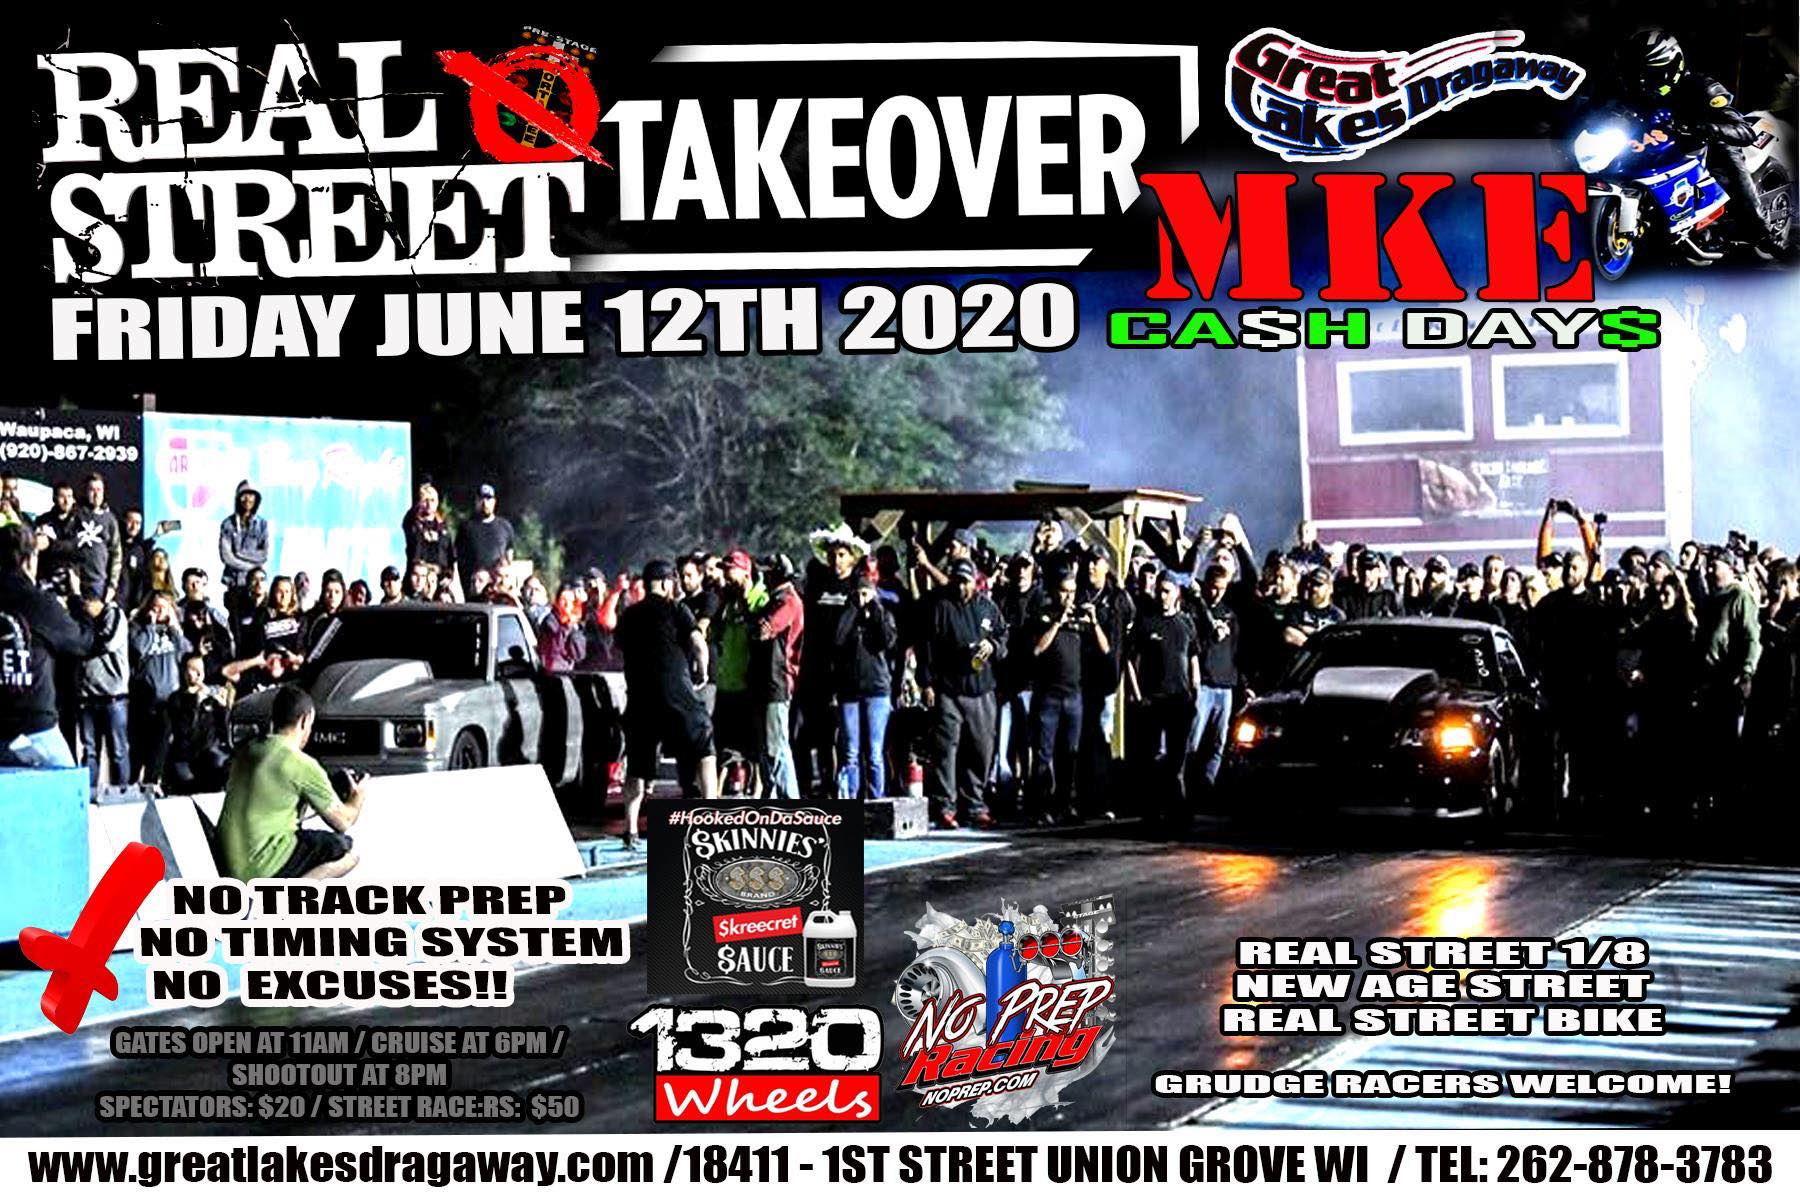 MKE Real Street Takeover 2020 Great Lakes Dragaway